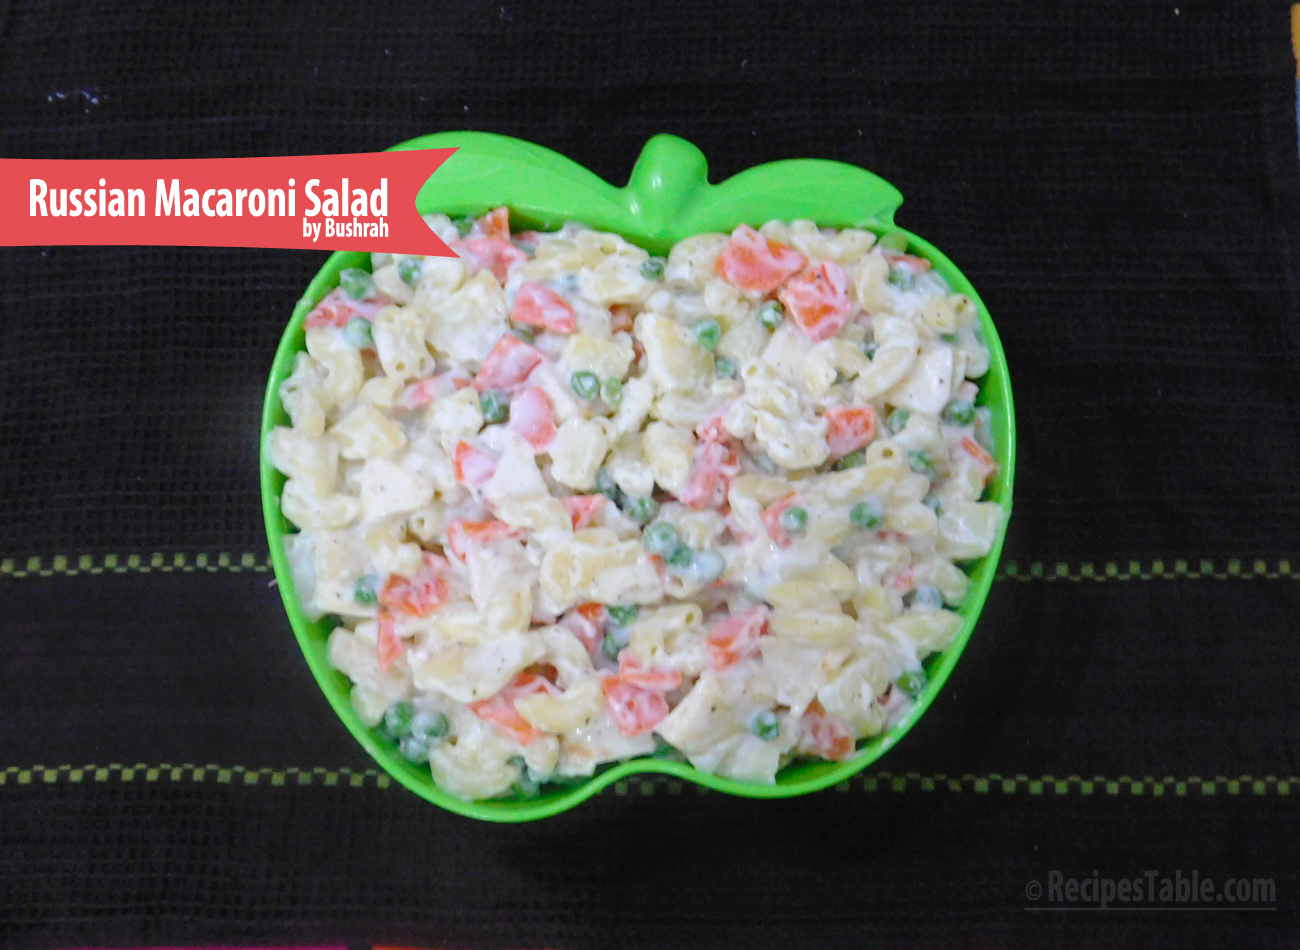 Russian Macaroni Salad recipe